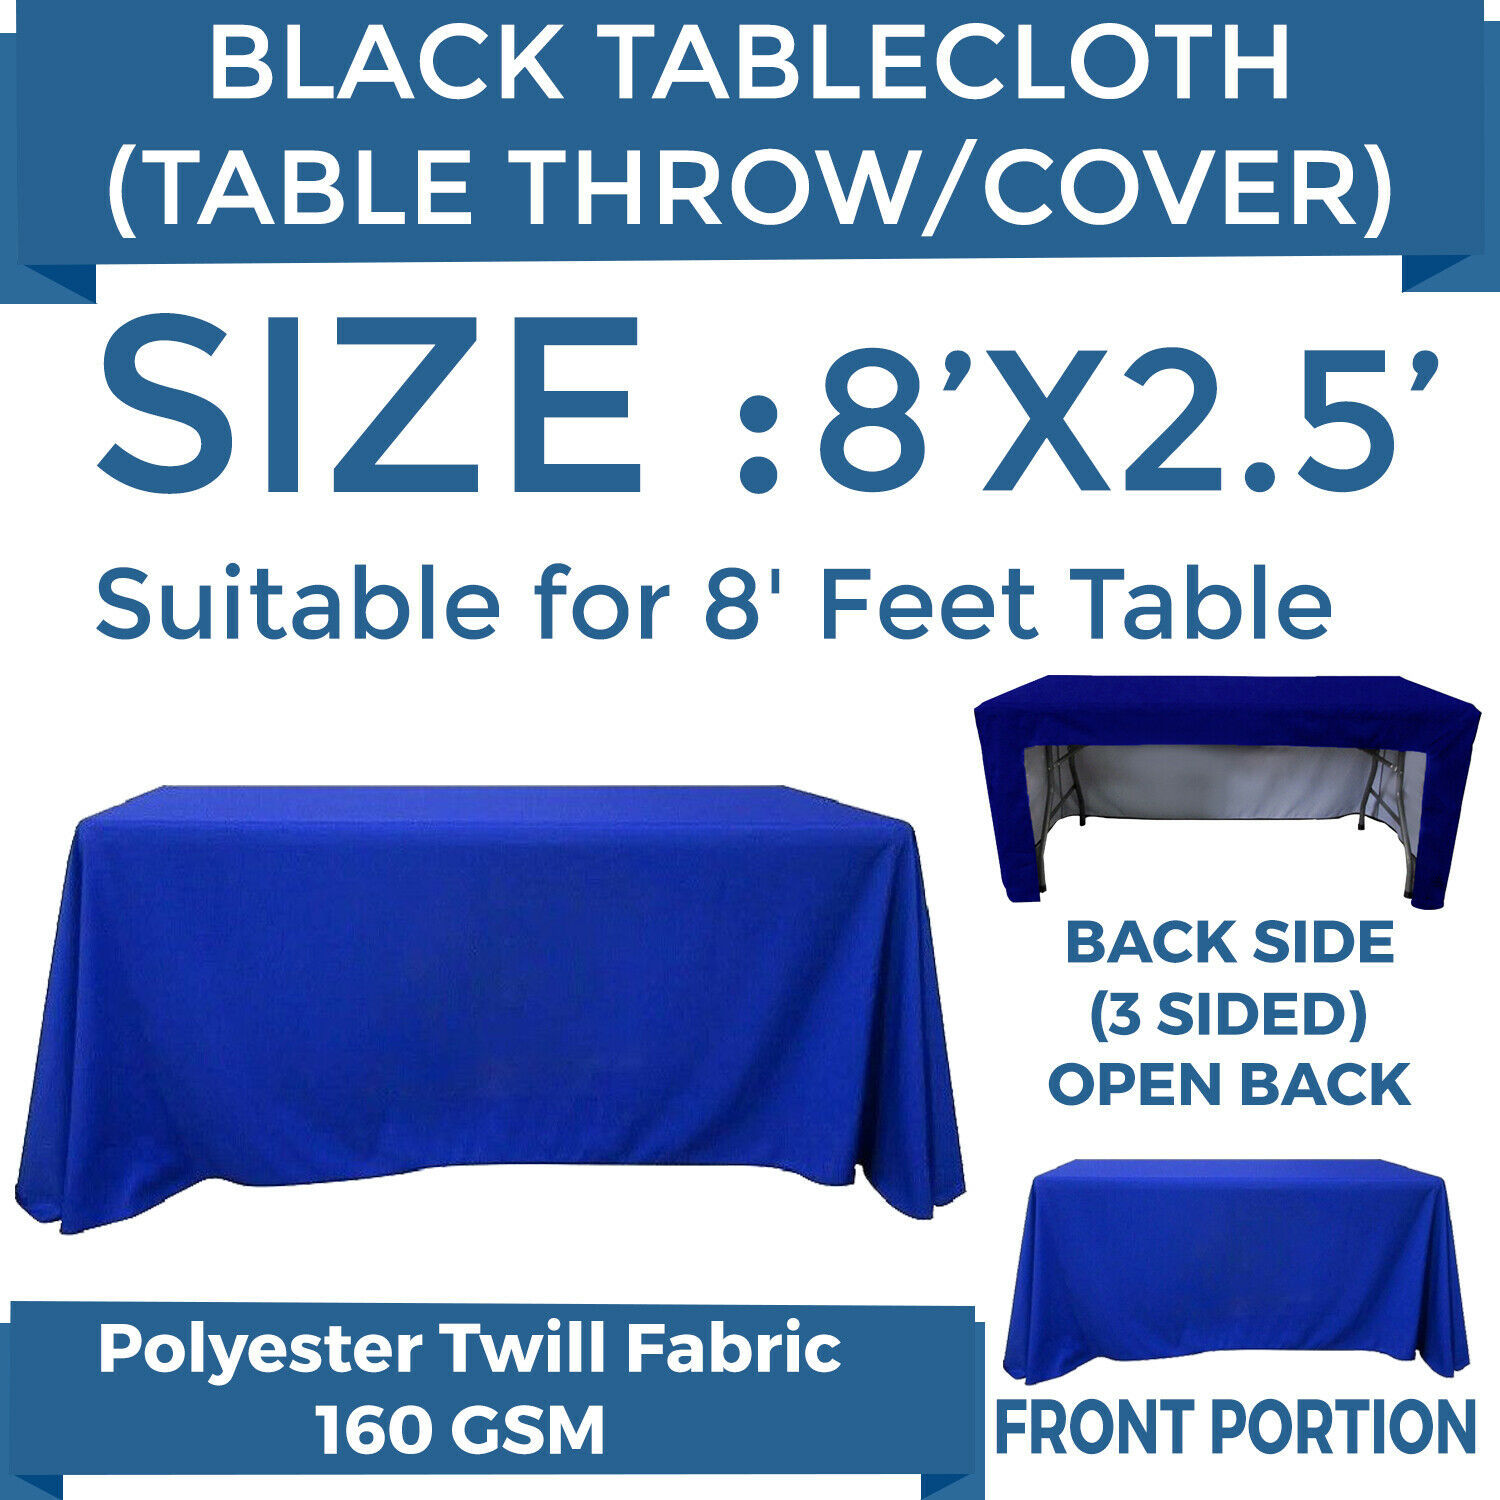 8ft. Full Color Blank Table Cover/Throws 3 Sided Tablecloth for Tradeshow, Blue